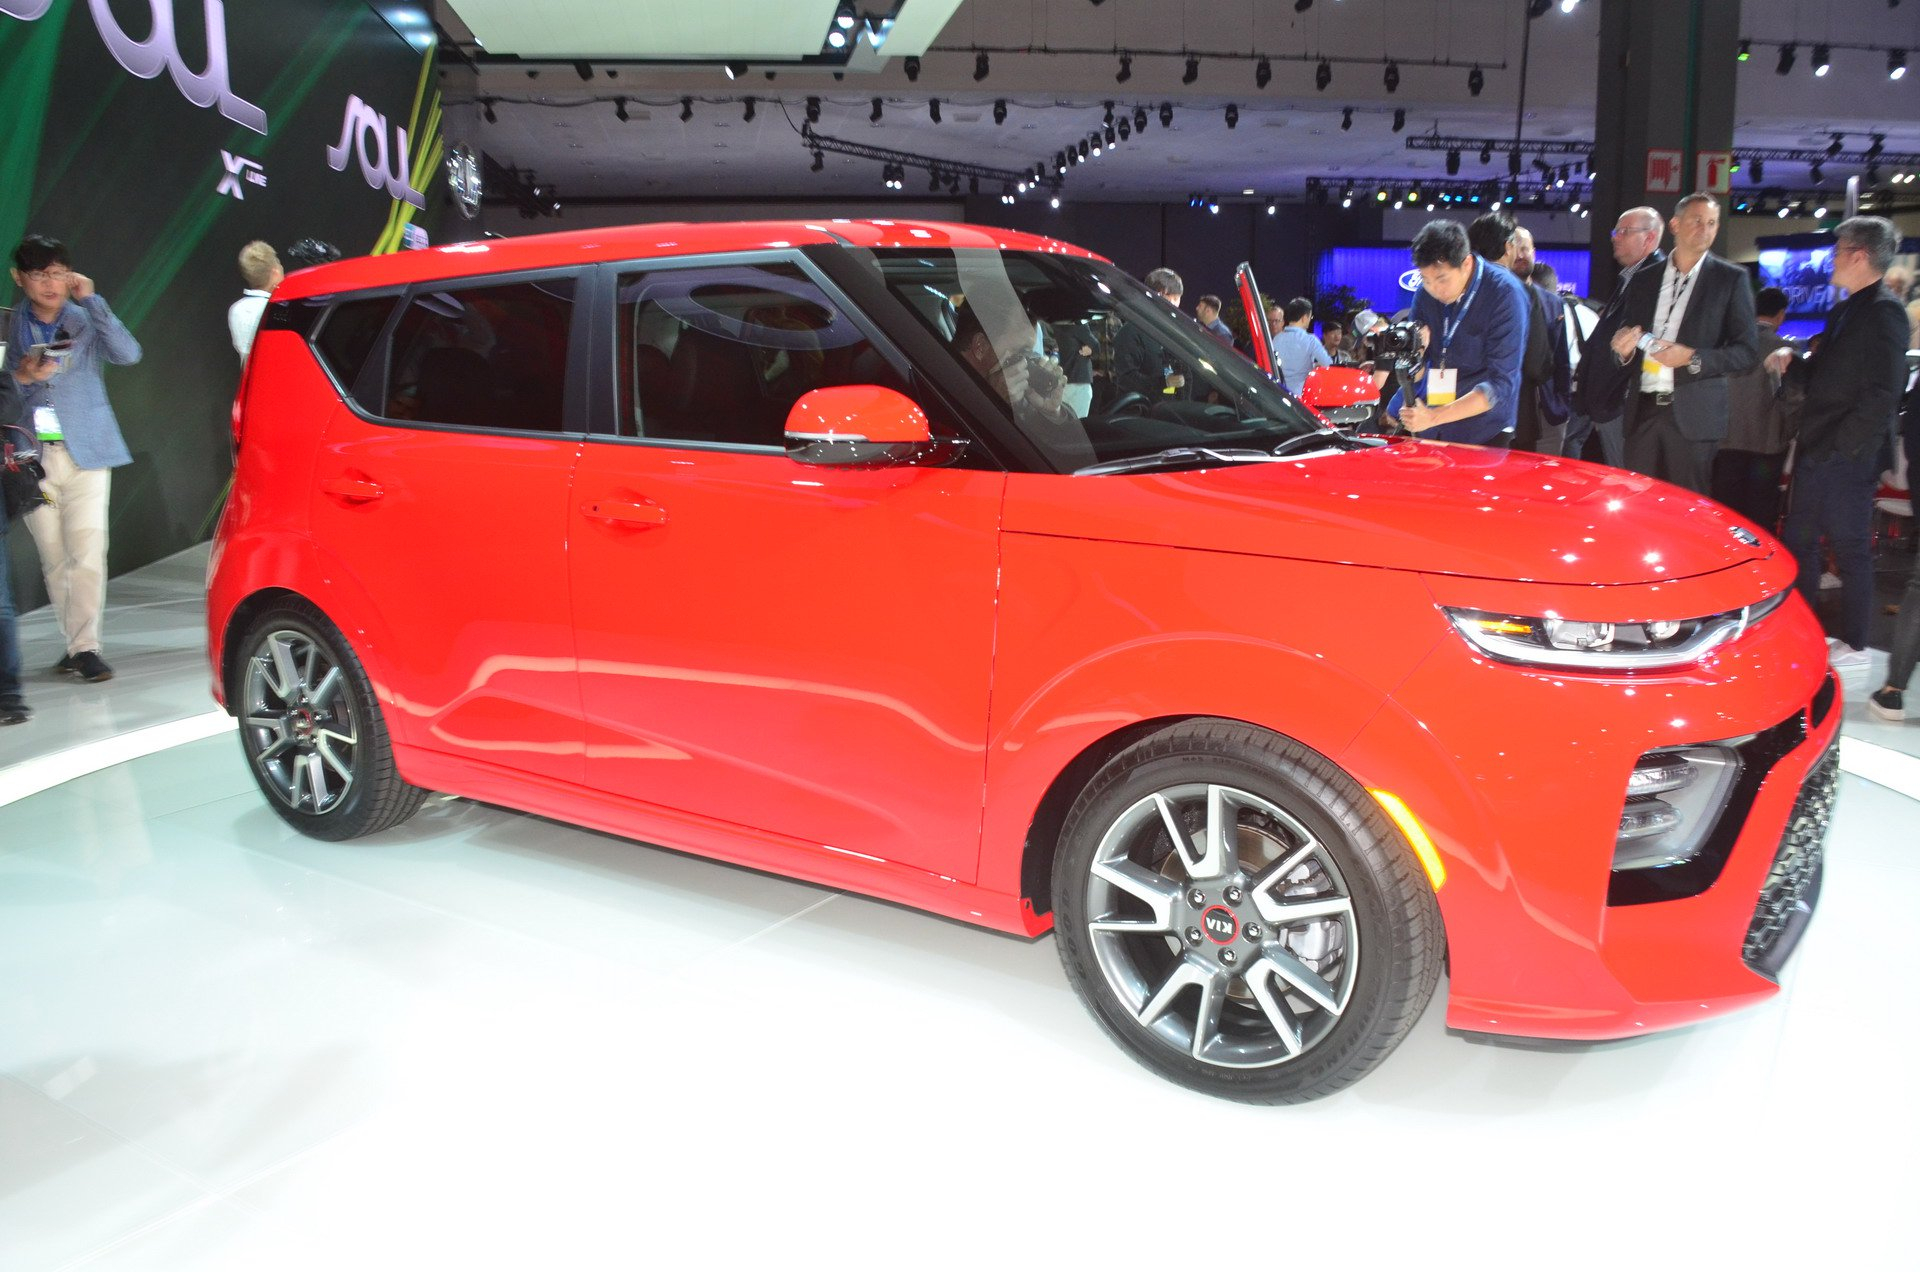 2020 Kia Soul Unveiled With New Design And An Electric - 2022 Kia Soul Red Color Concept, Premier Specs, Rumor